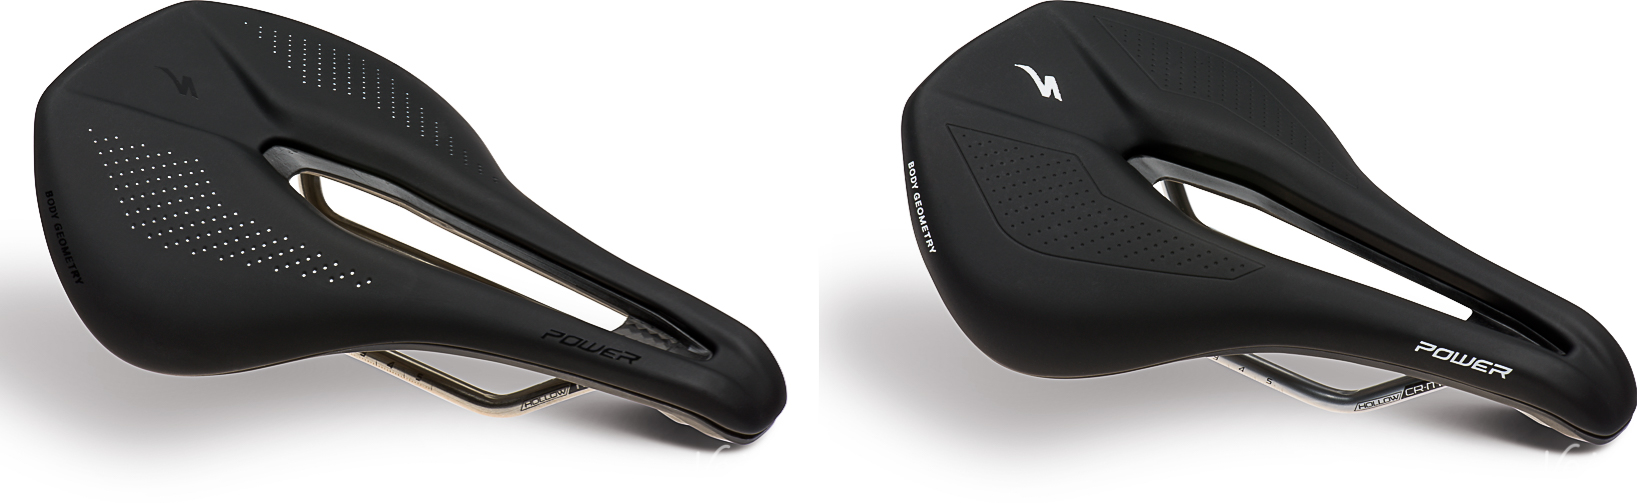 Compo_Specialized_Power_Selle_Comp_Pro_1